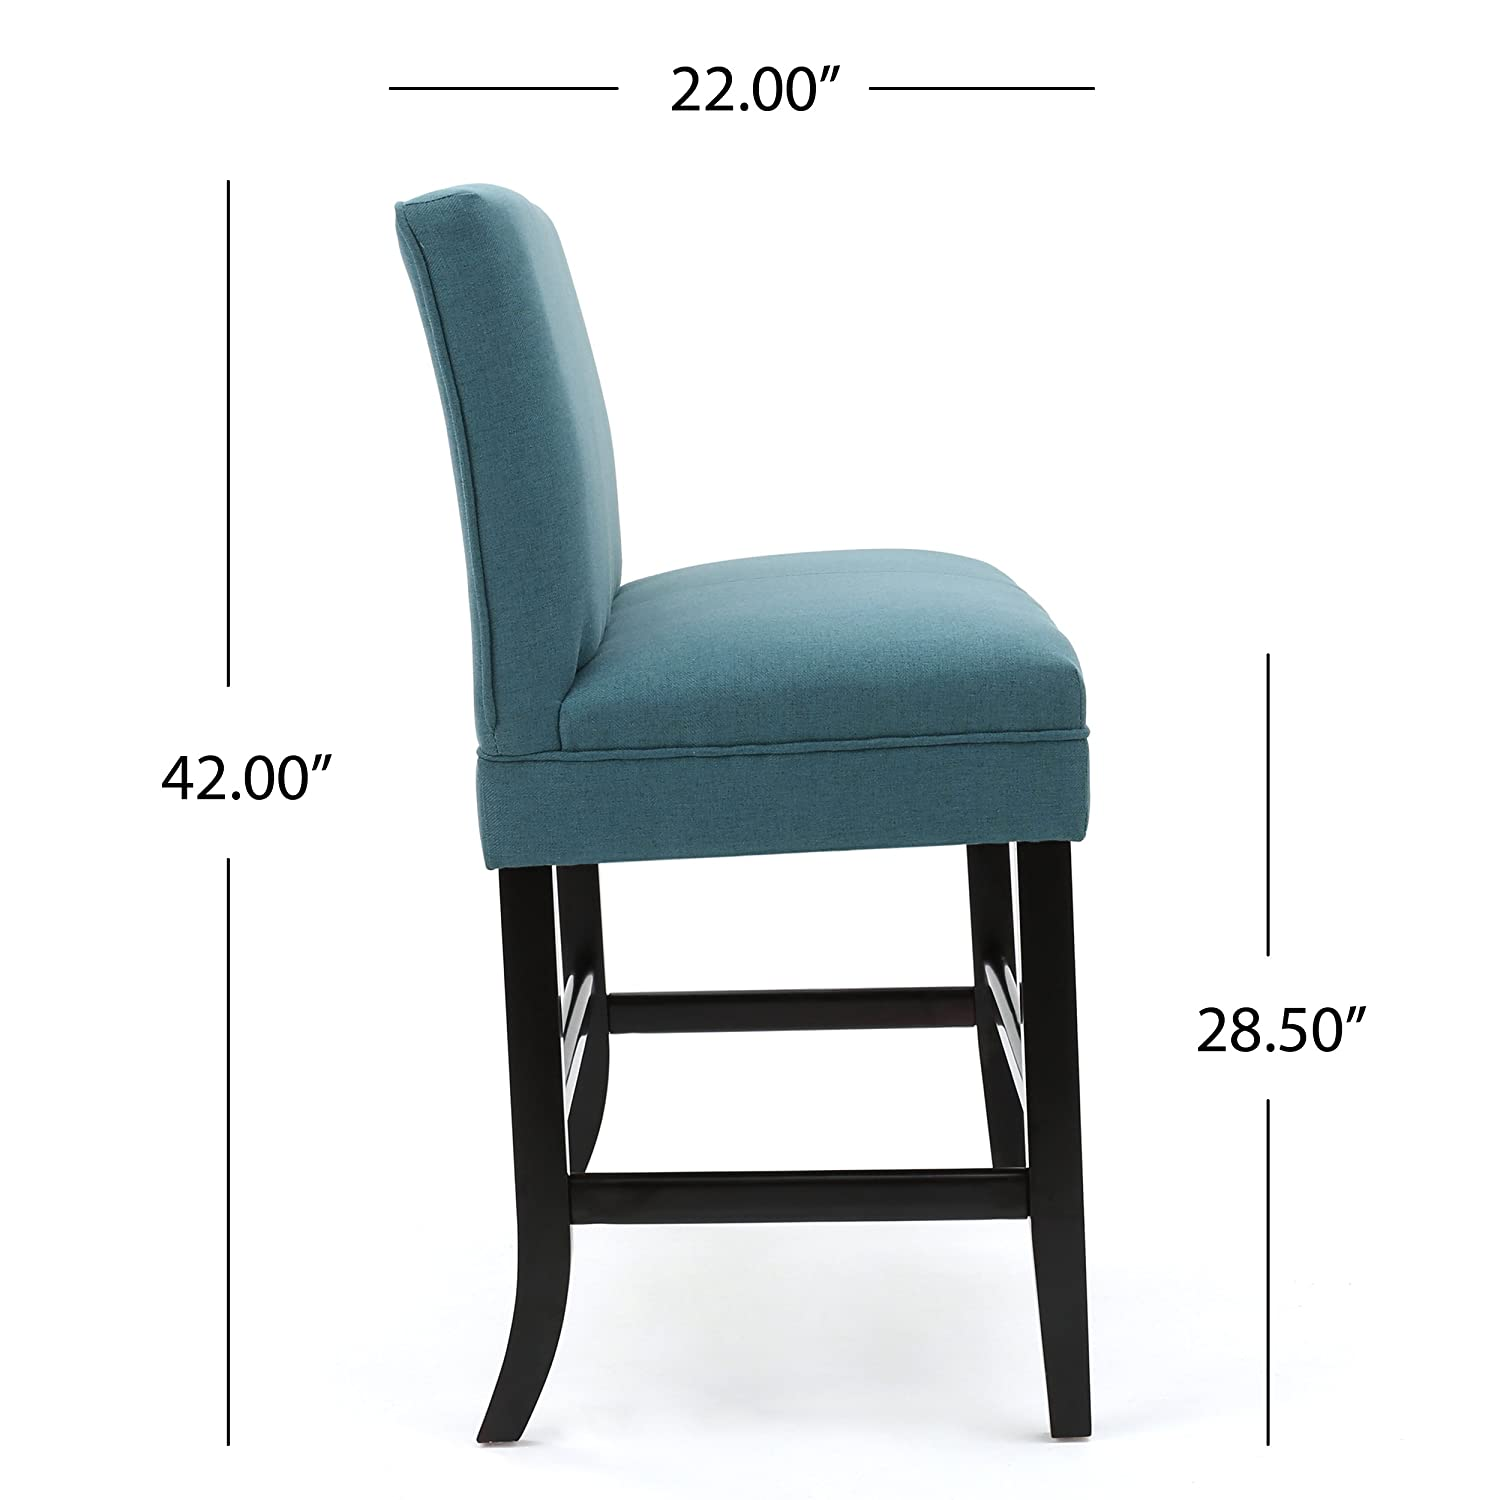 Amazon.com: Emilia Dark Teal Fabric Barstool Bench: Kitchen & Dining